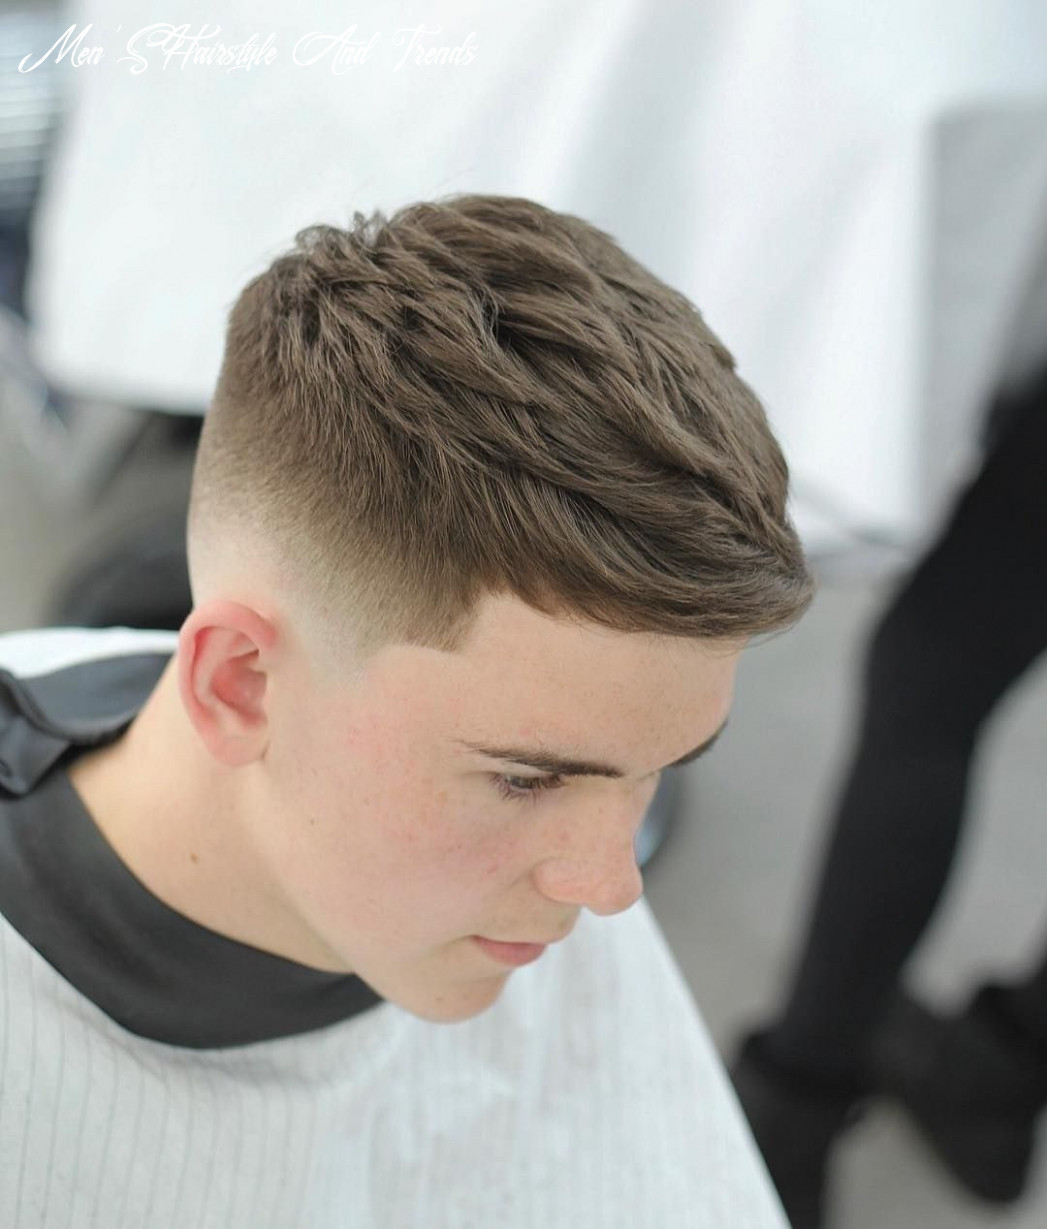 Mens hairstyle trends 12 with bangs pin on doctor in